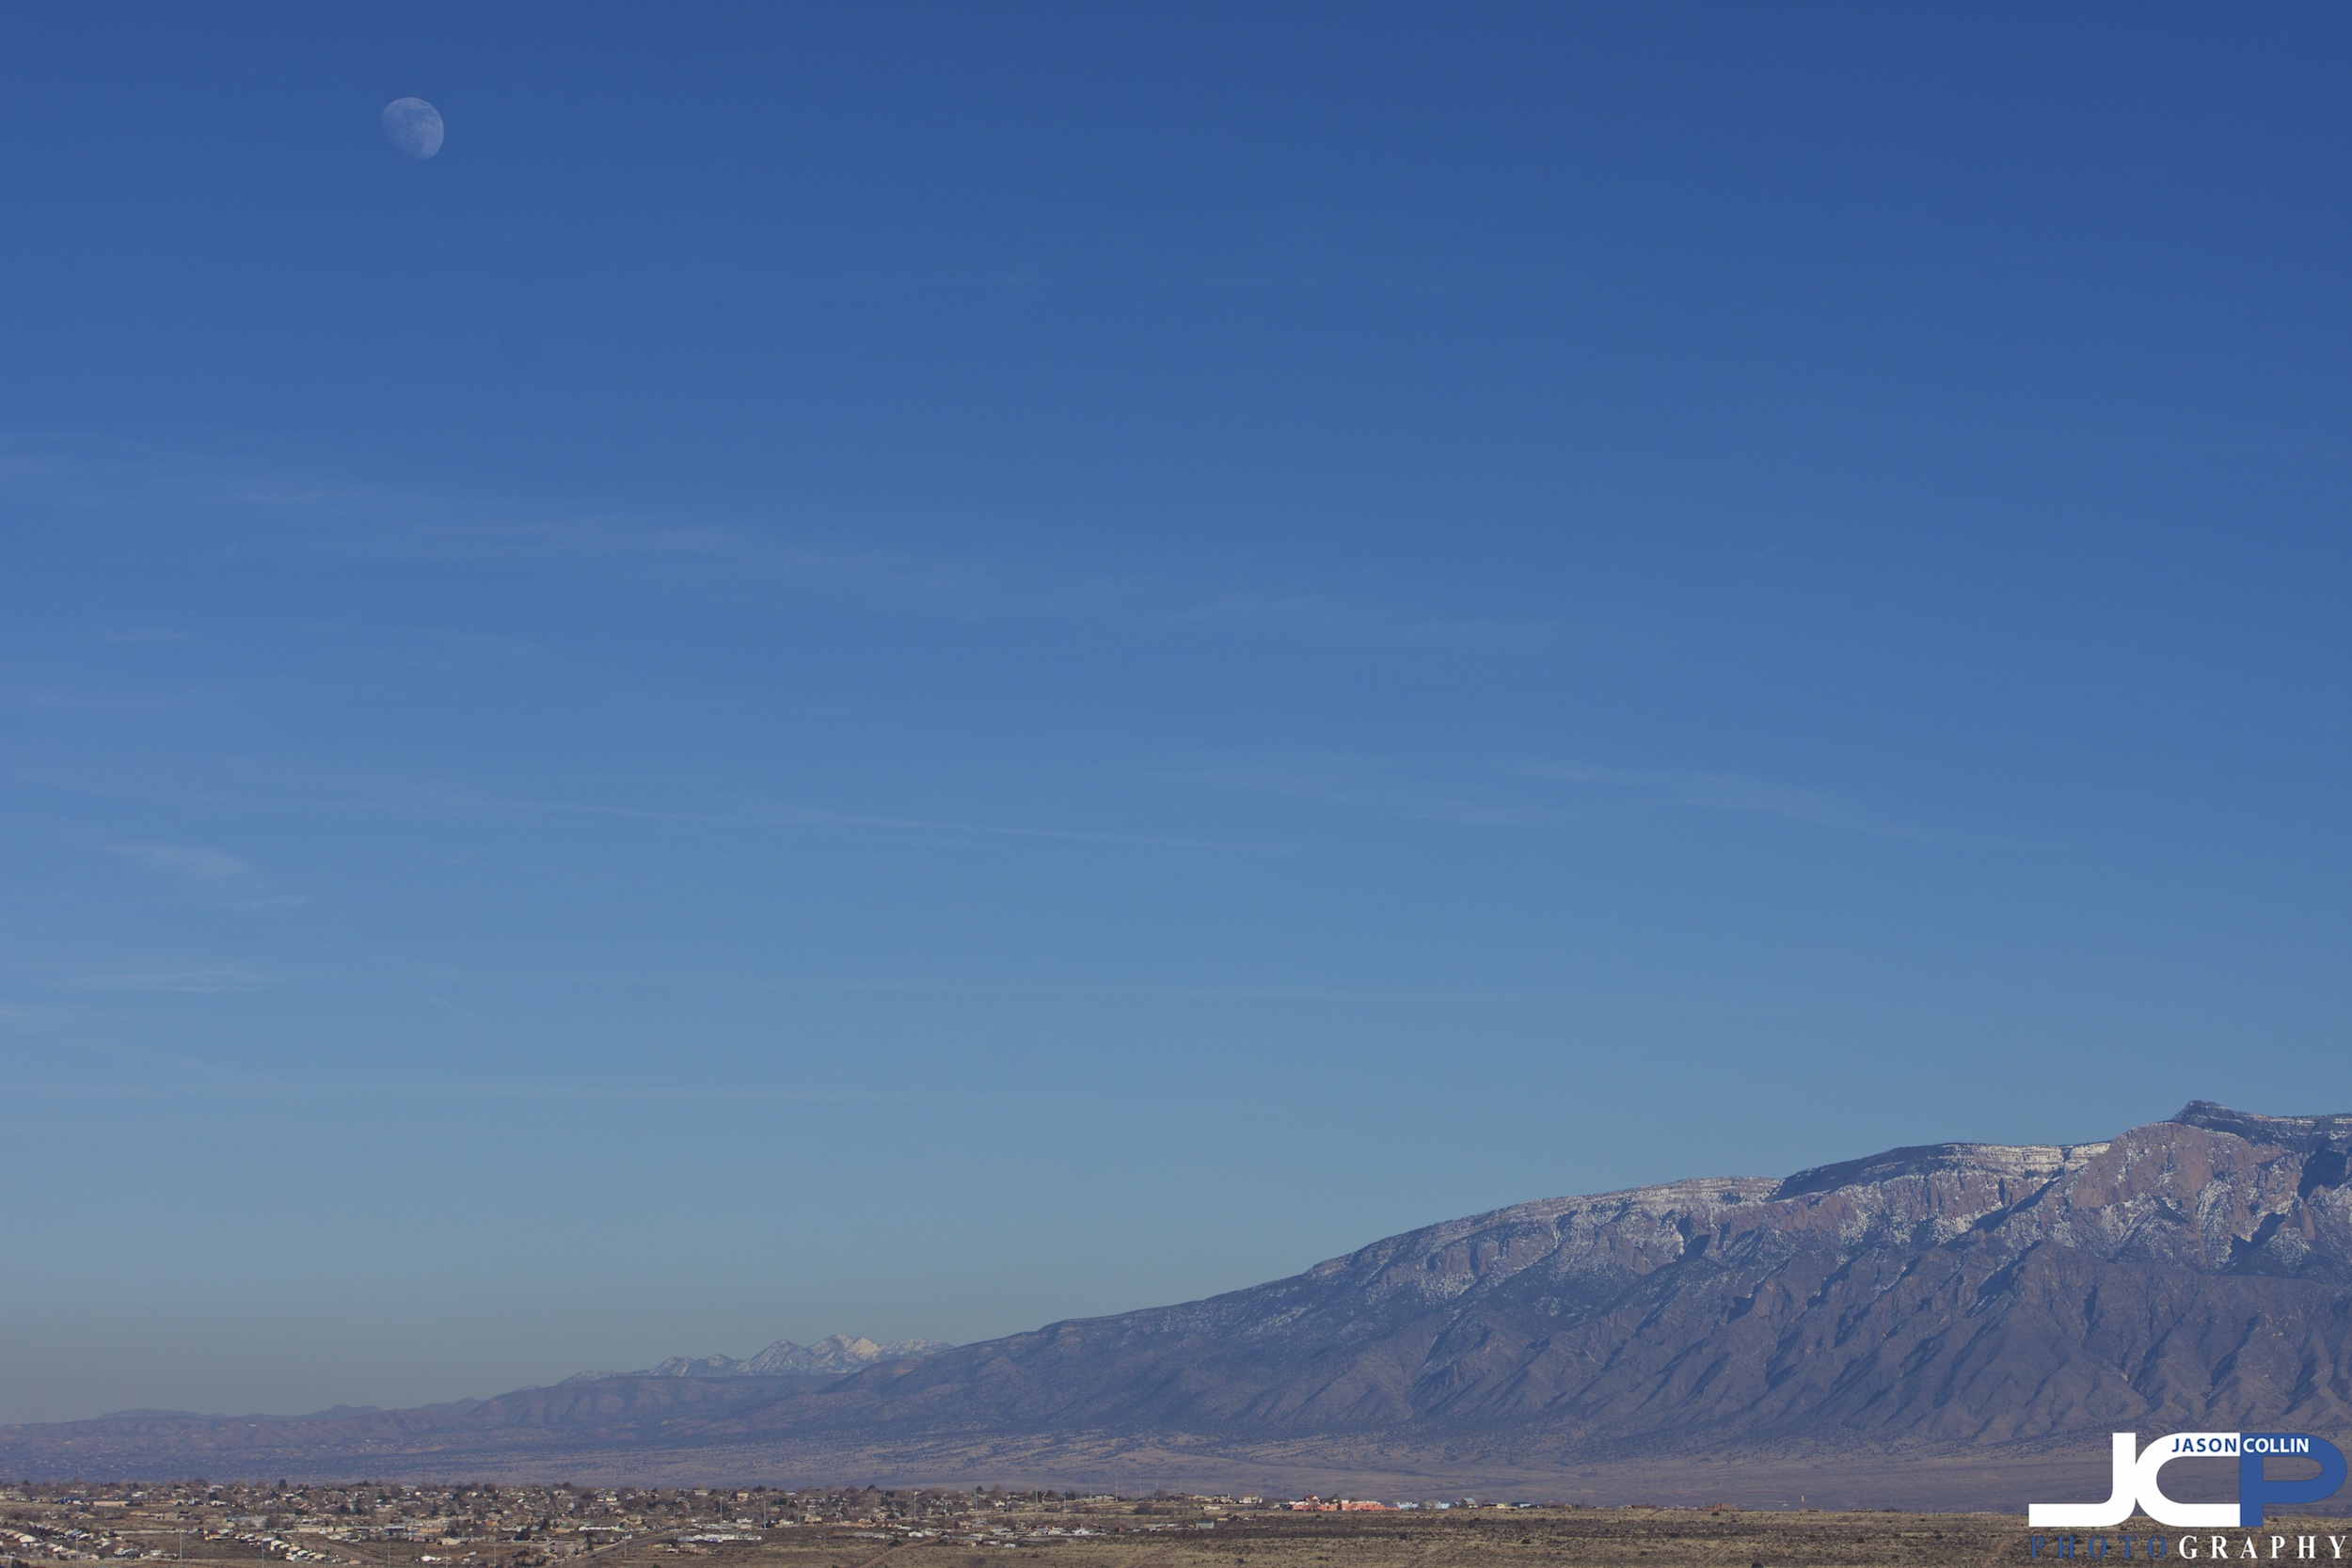 The edges of Albuquerque metro area with the Sandias and the Moon - New Mexico fine art photography